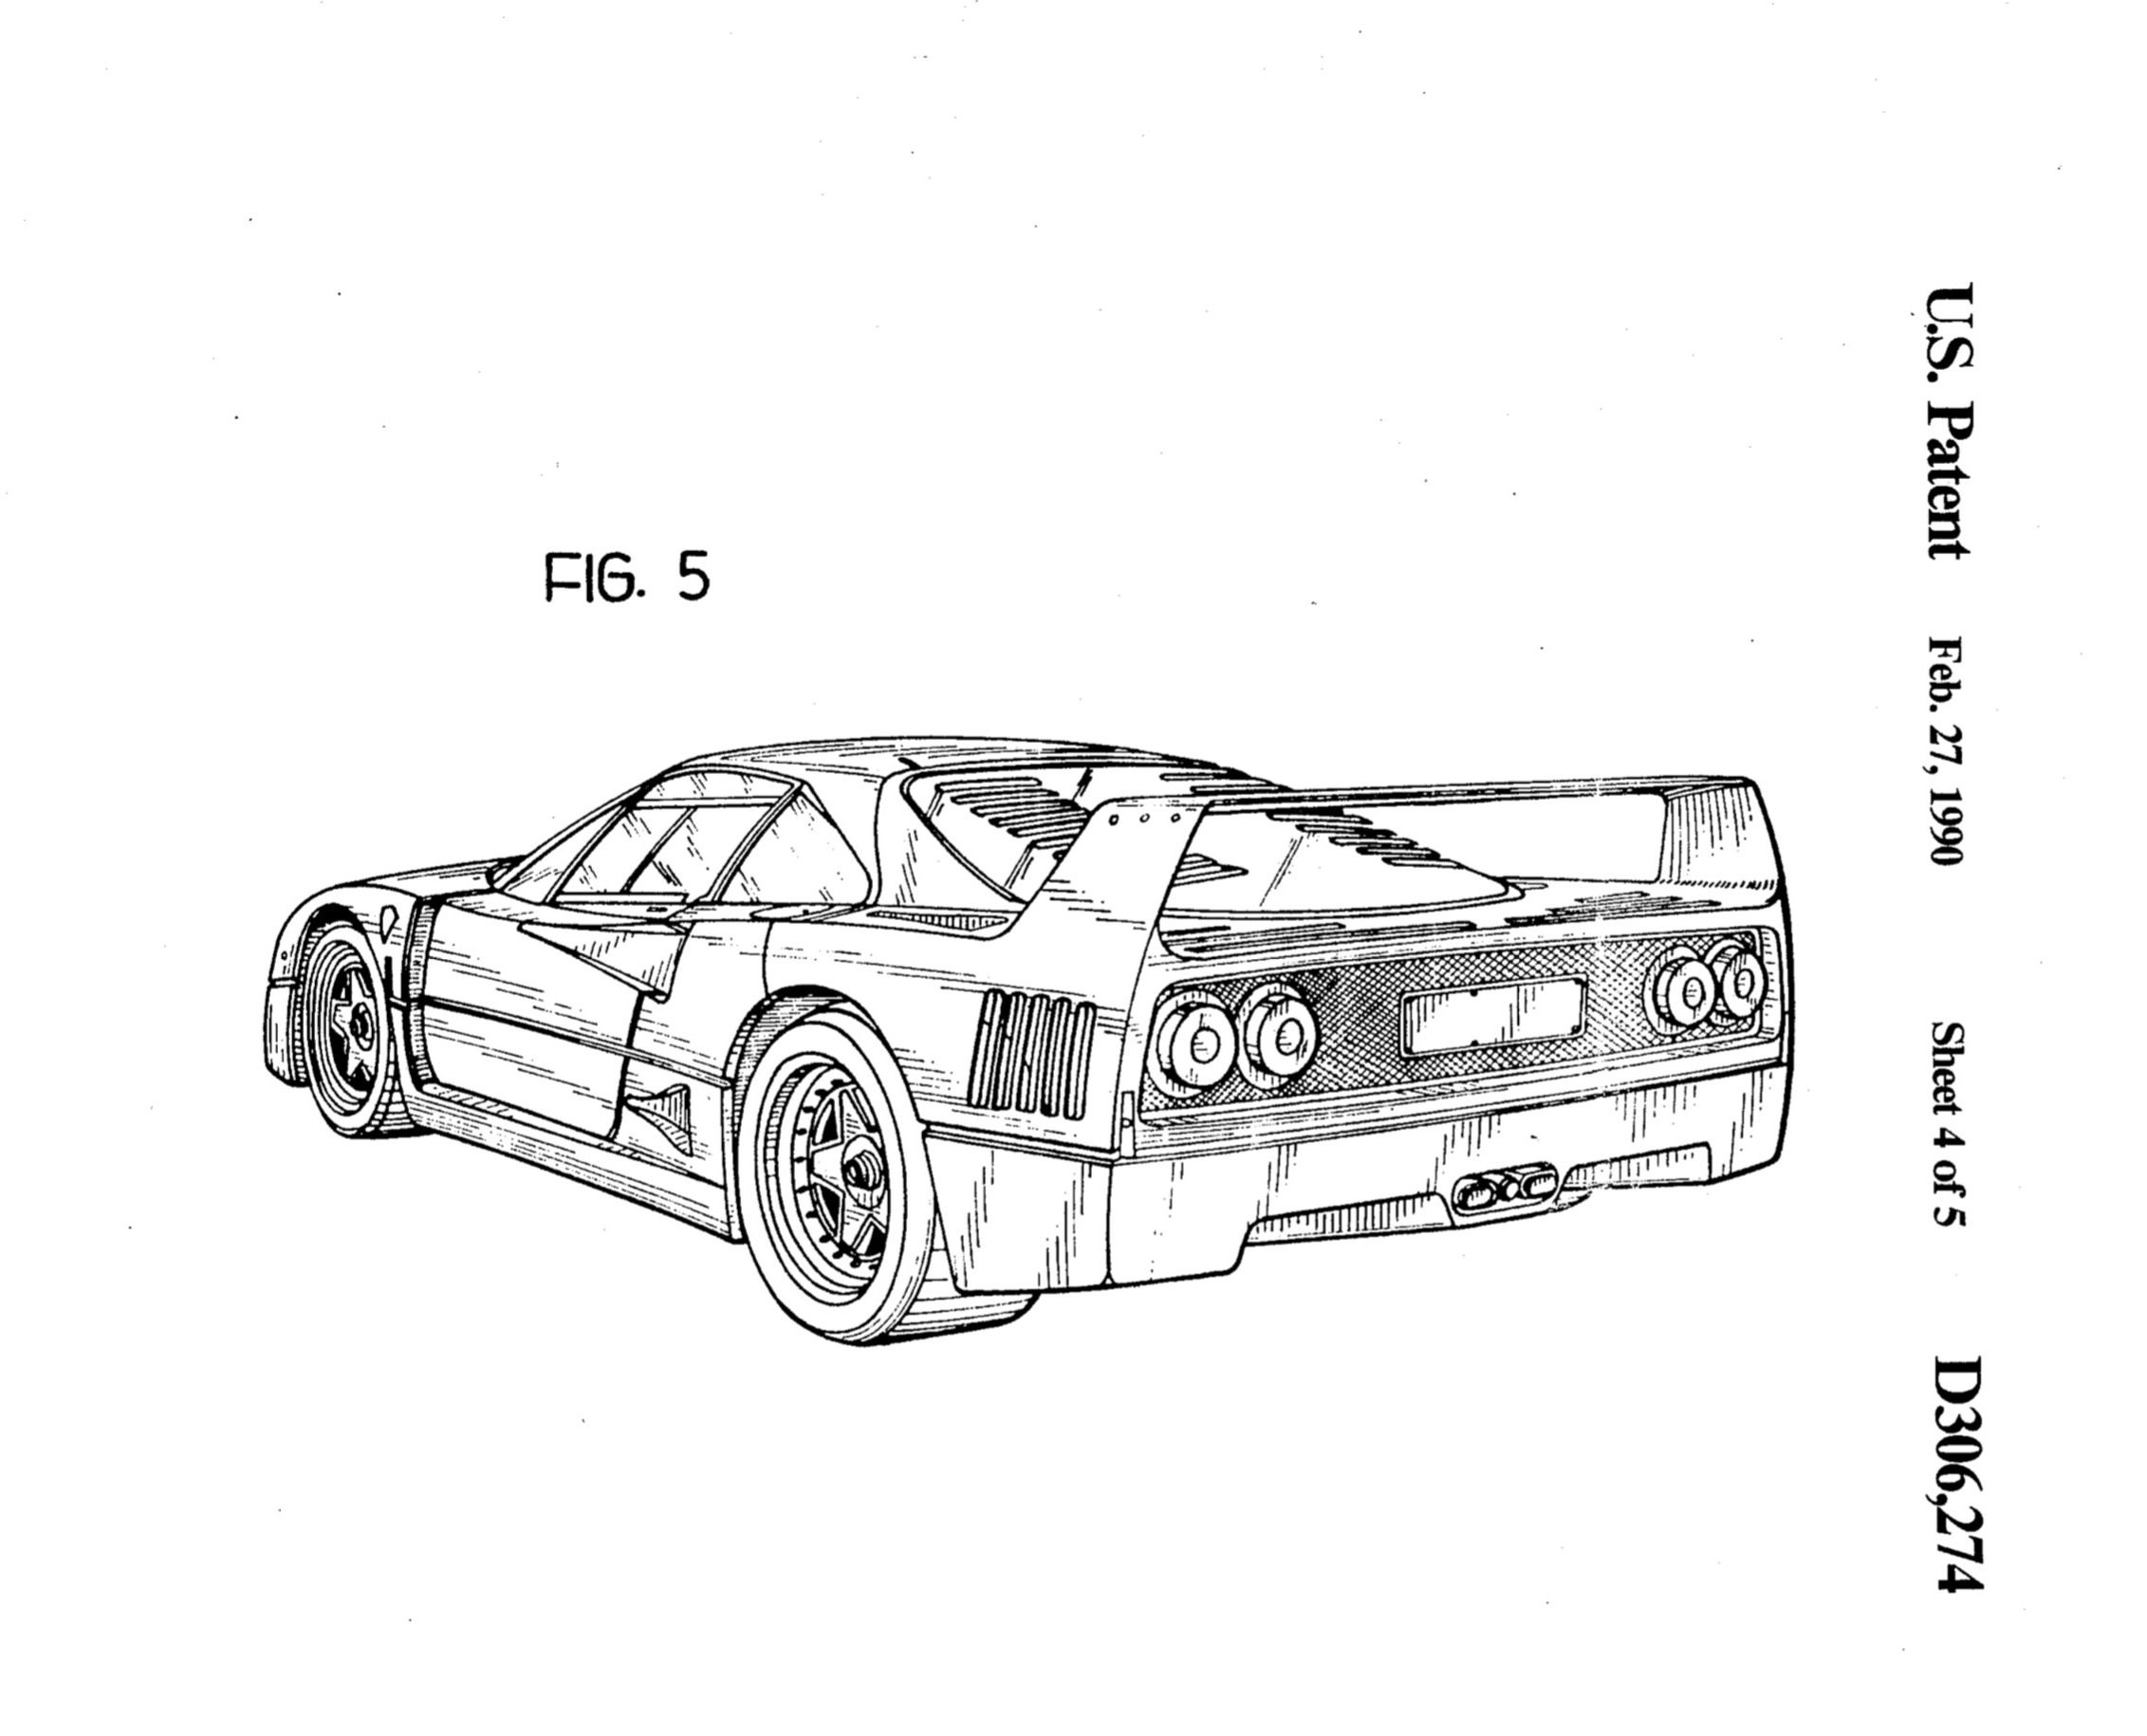 The Original Ferrari F40 Patent Drawings